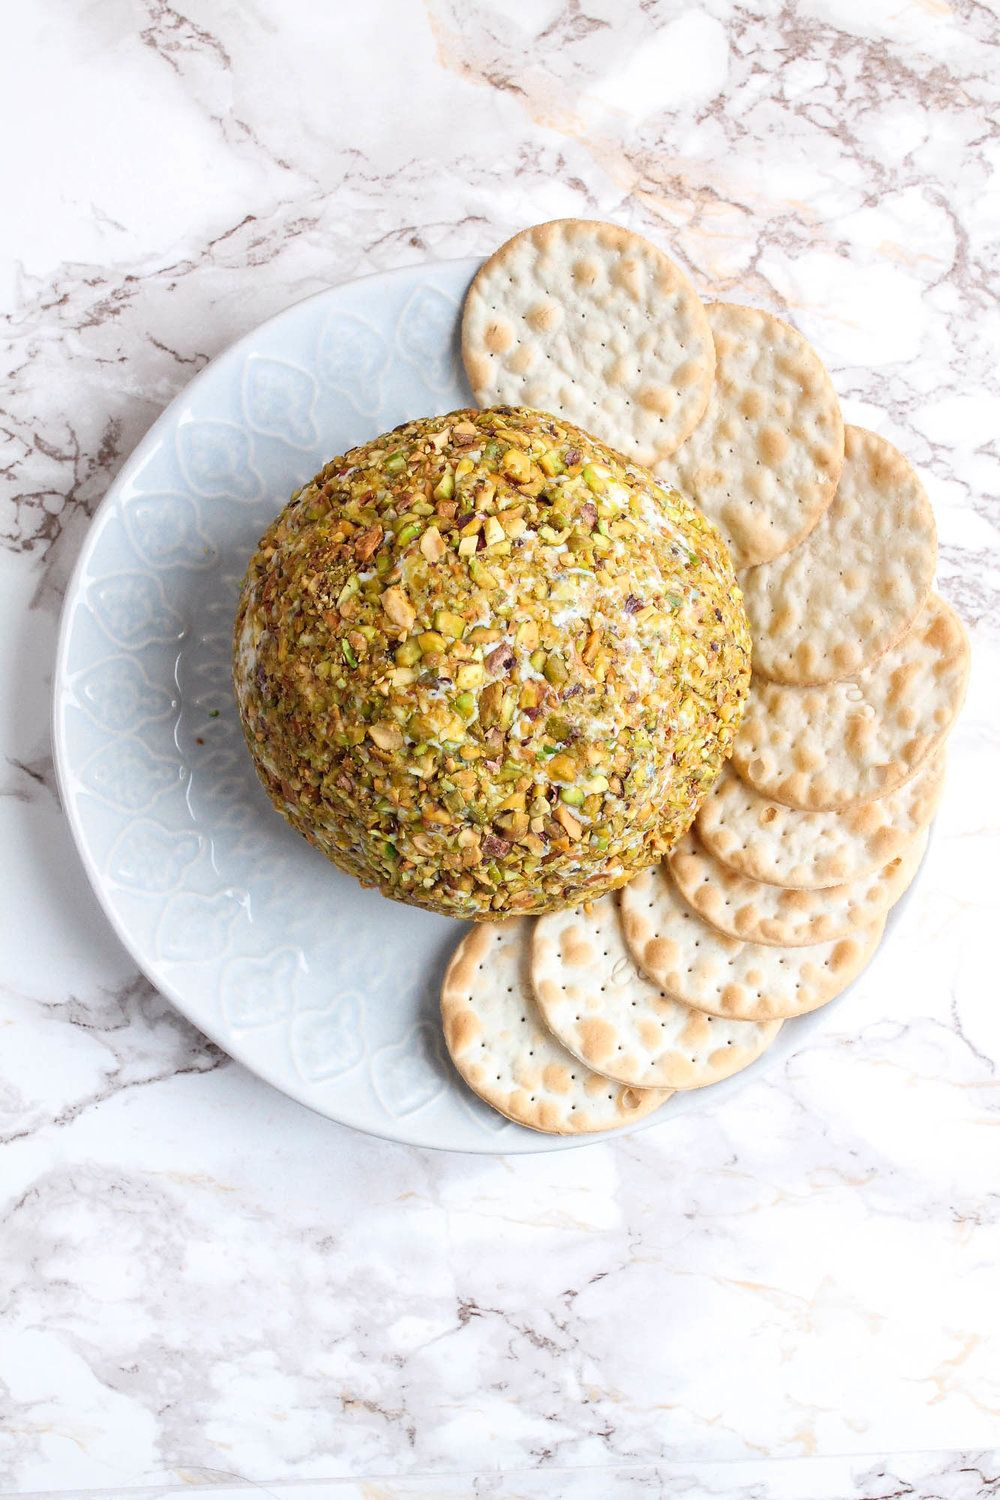 Stilton Pear Cheese Ball With Pistachios Pink Peppercorns Cream Honey Cheese Ball Stilton Cheese Recipes Breakfast Brunch Recipes